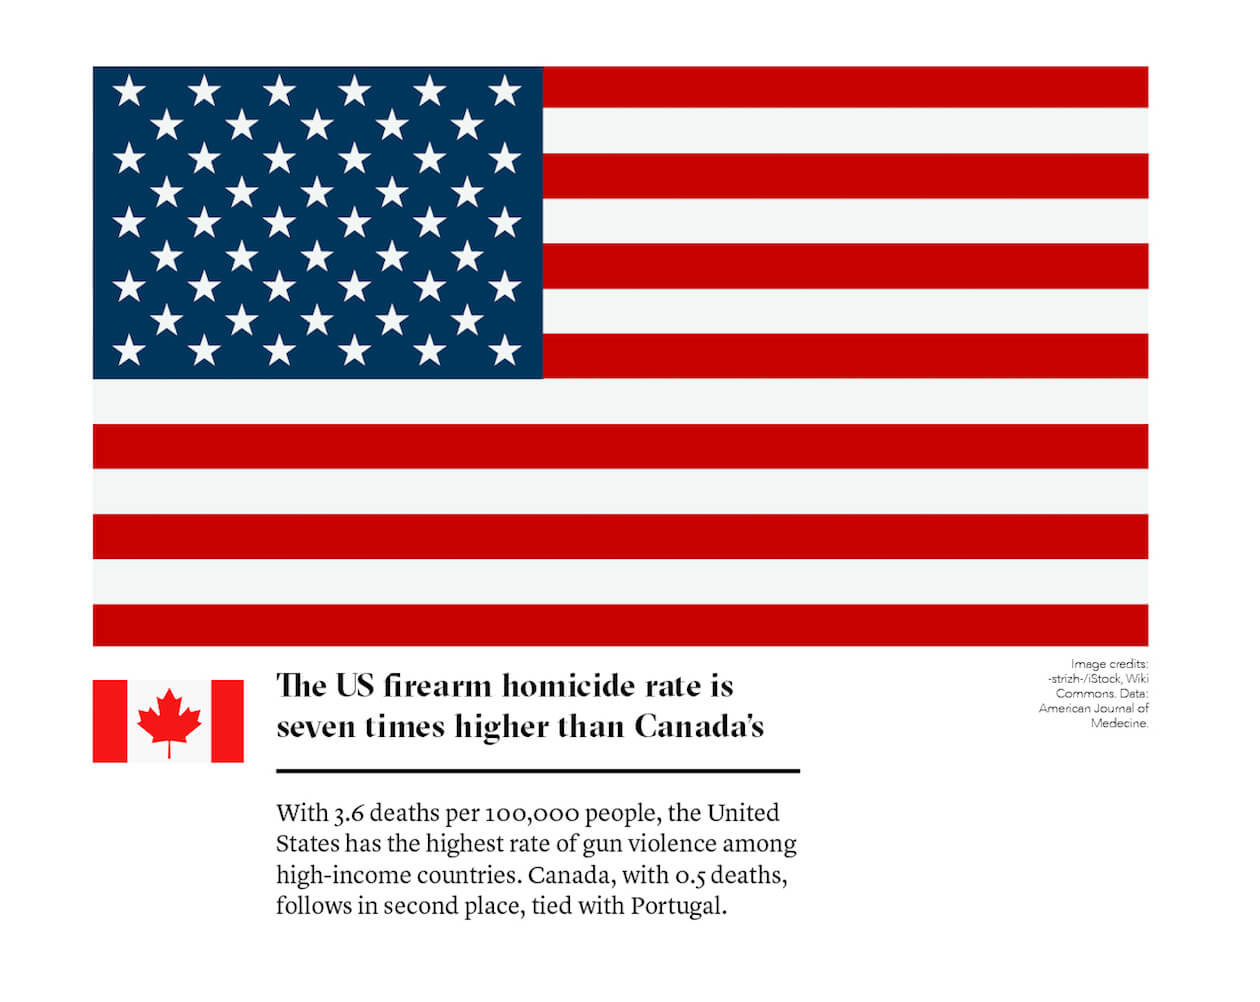 The U.S. firearm homicide rate is 7 times higher than Canada's